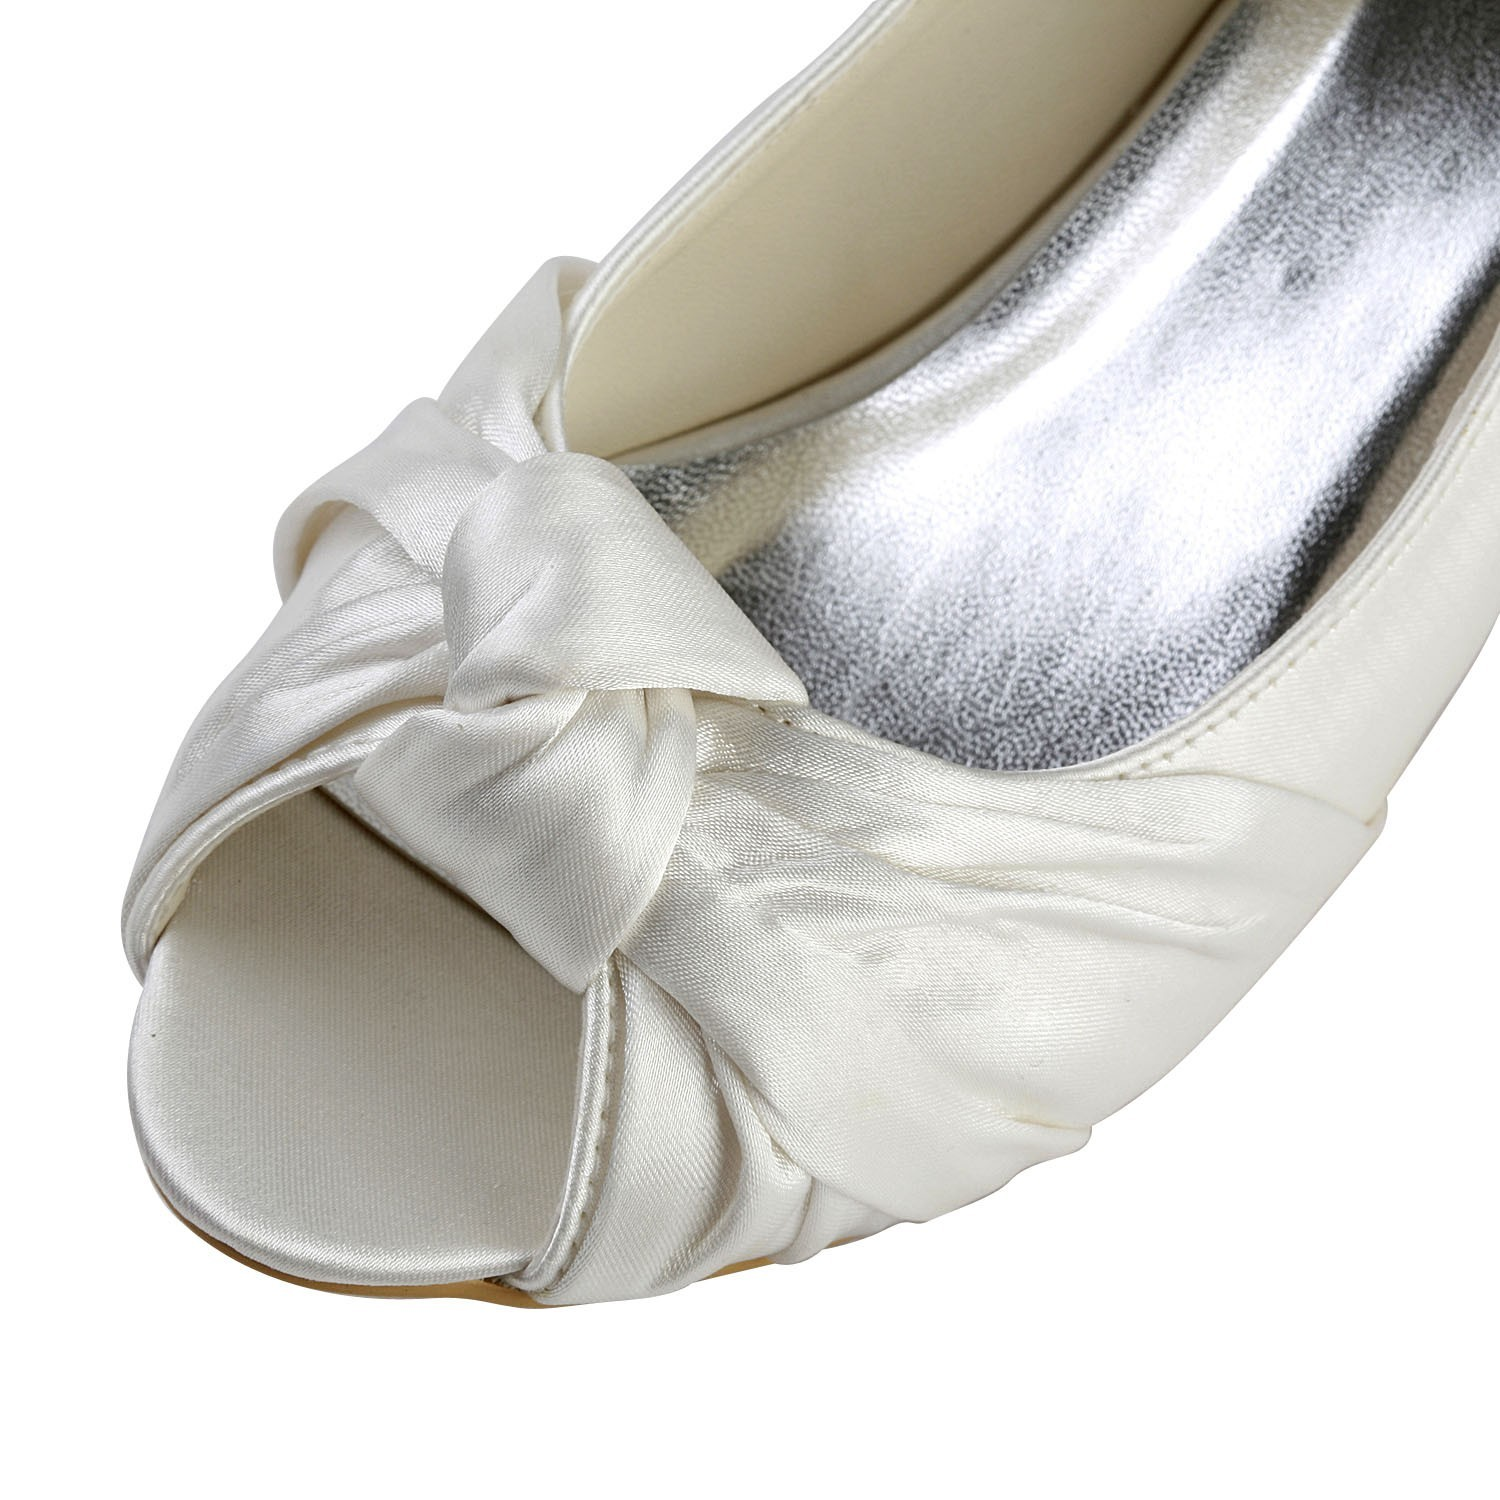 3731a632a03 satin low heel peep toe sandals wedding shoes with bowknot-6.jpg